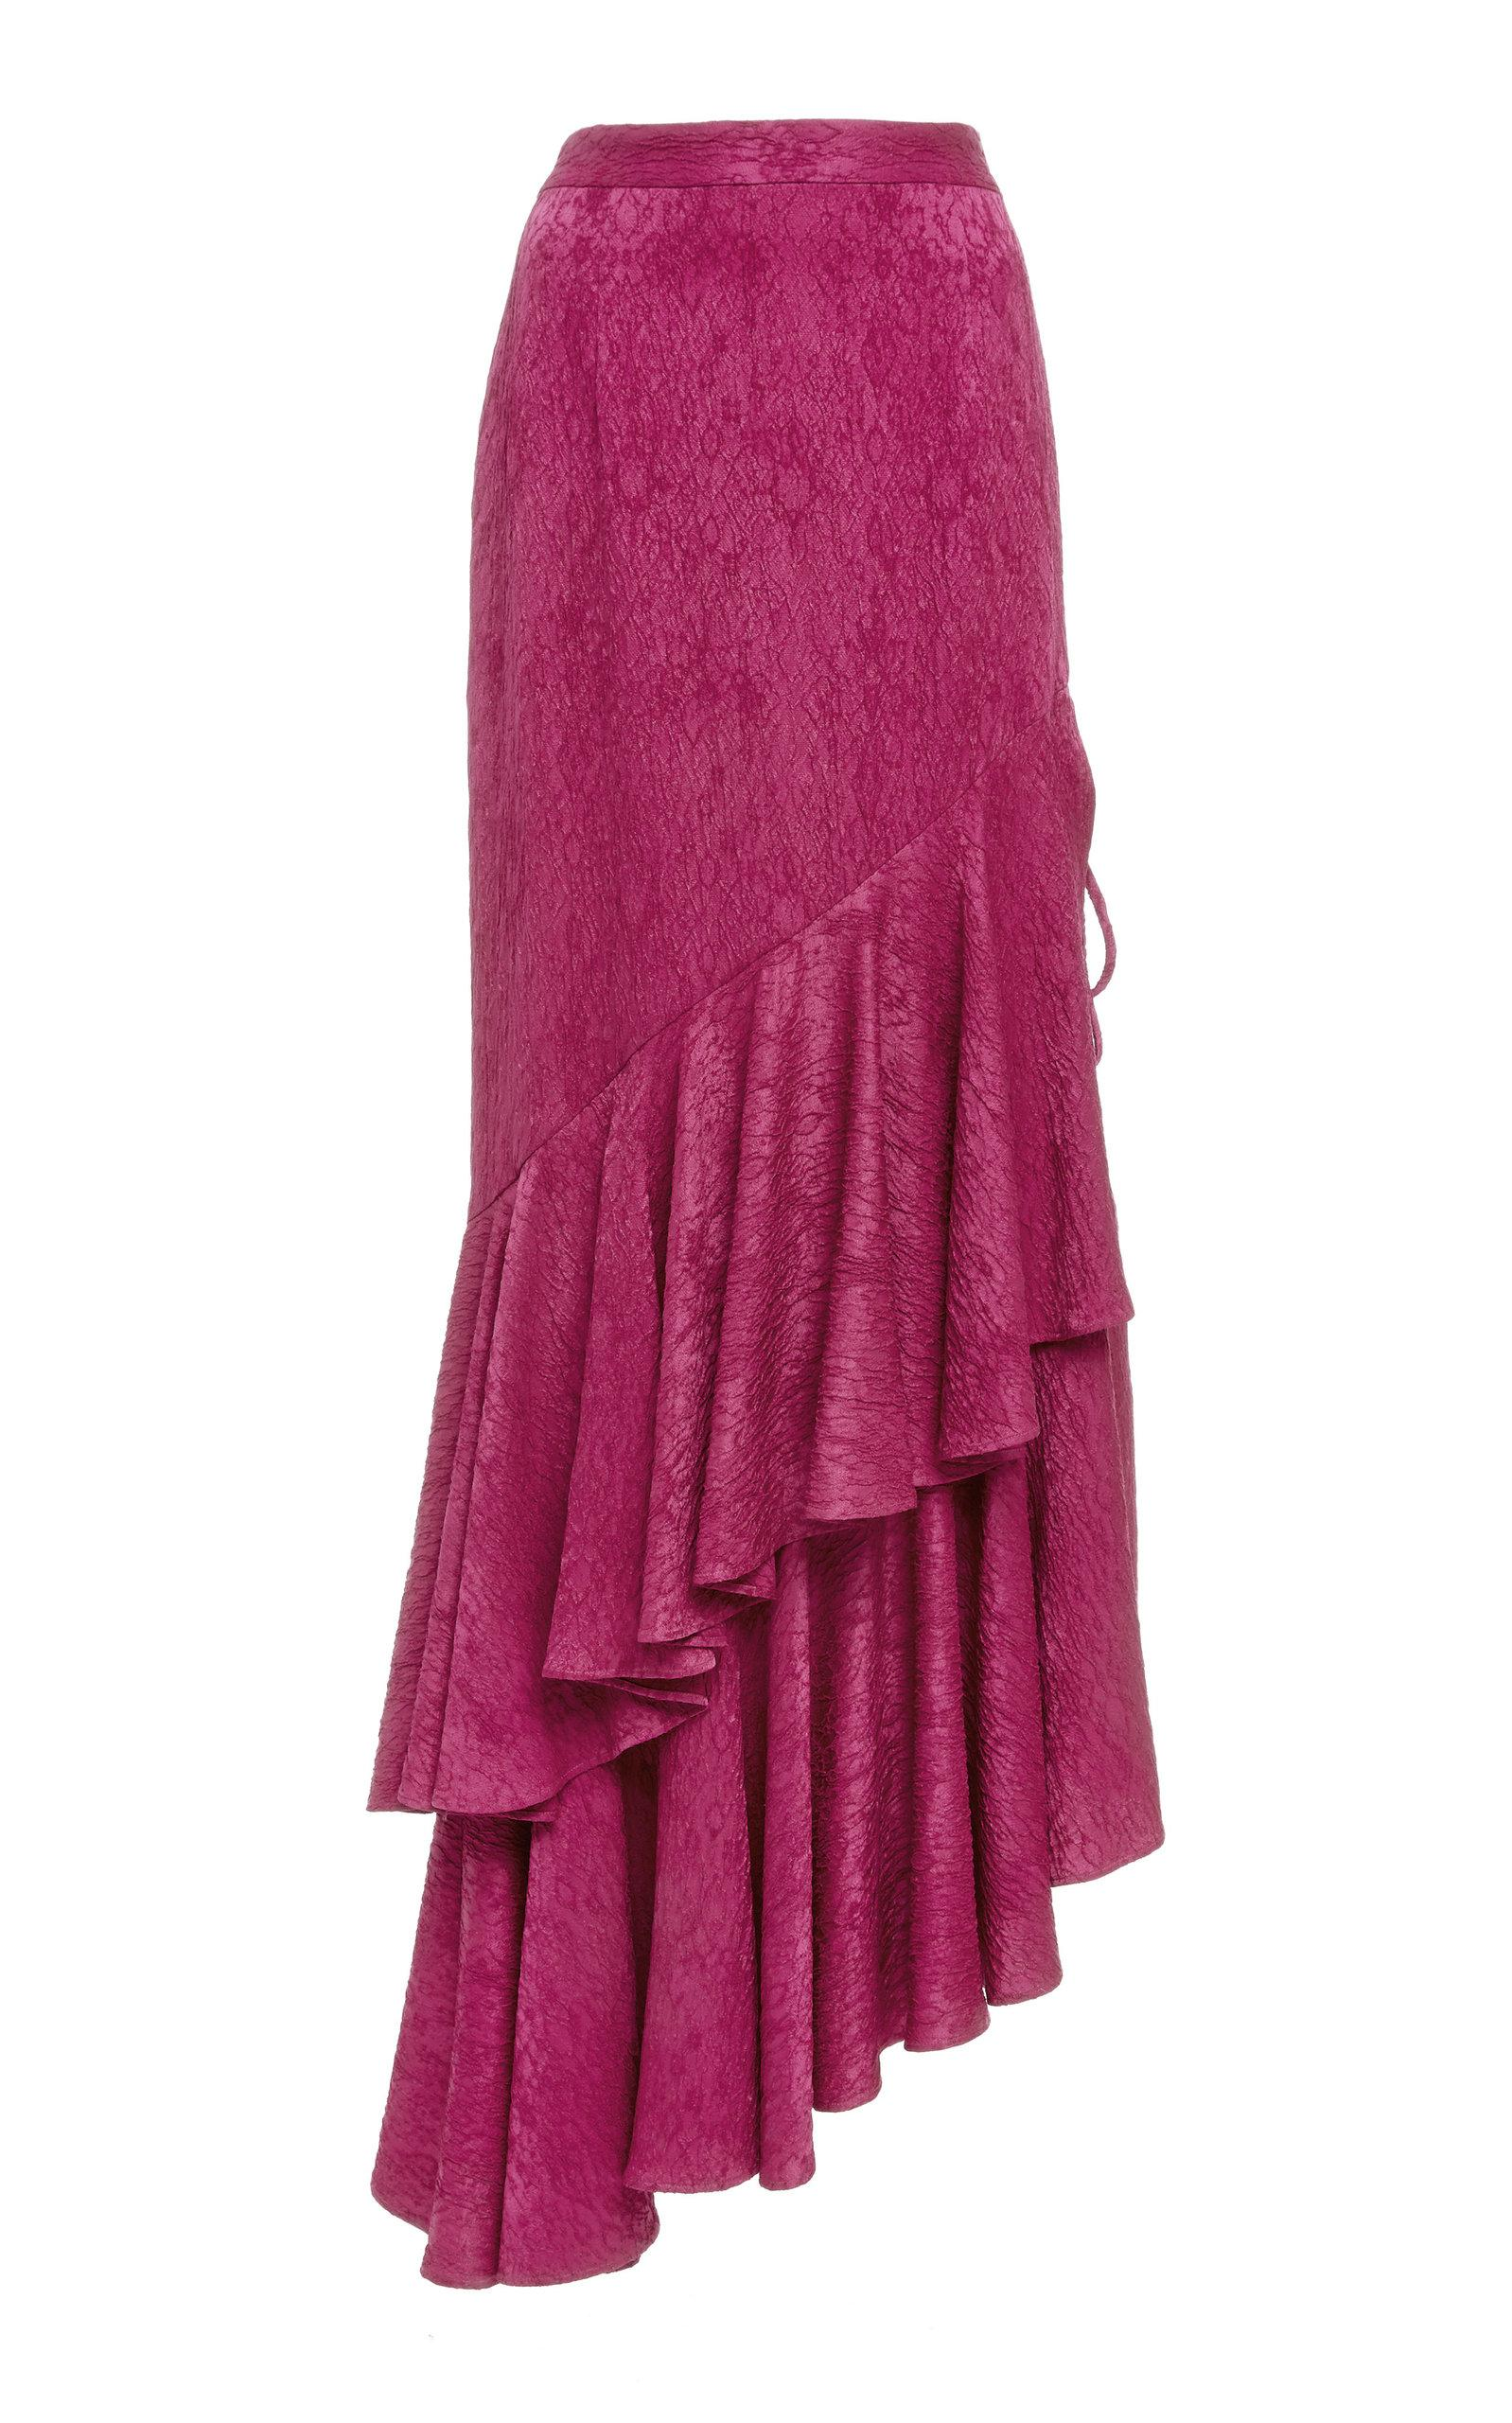 Hellessy Poppy Fuchsia Maxi Skirt In Pink